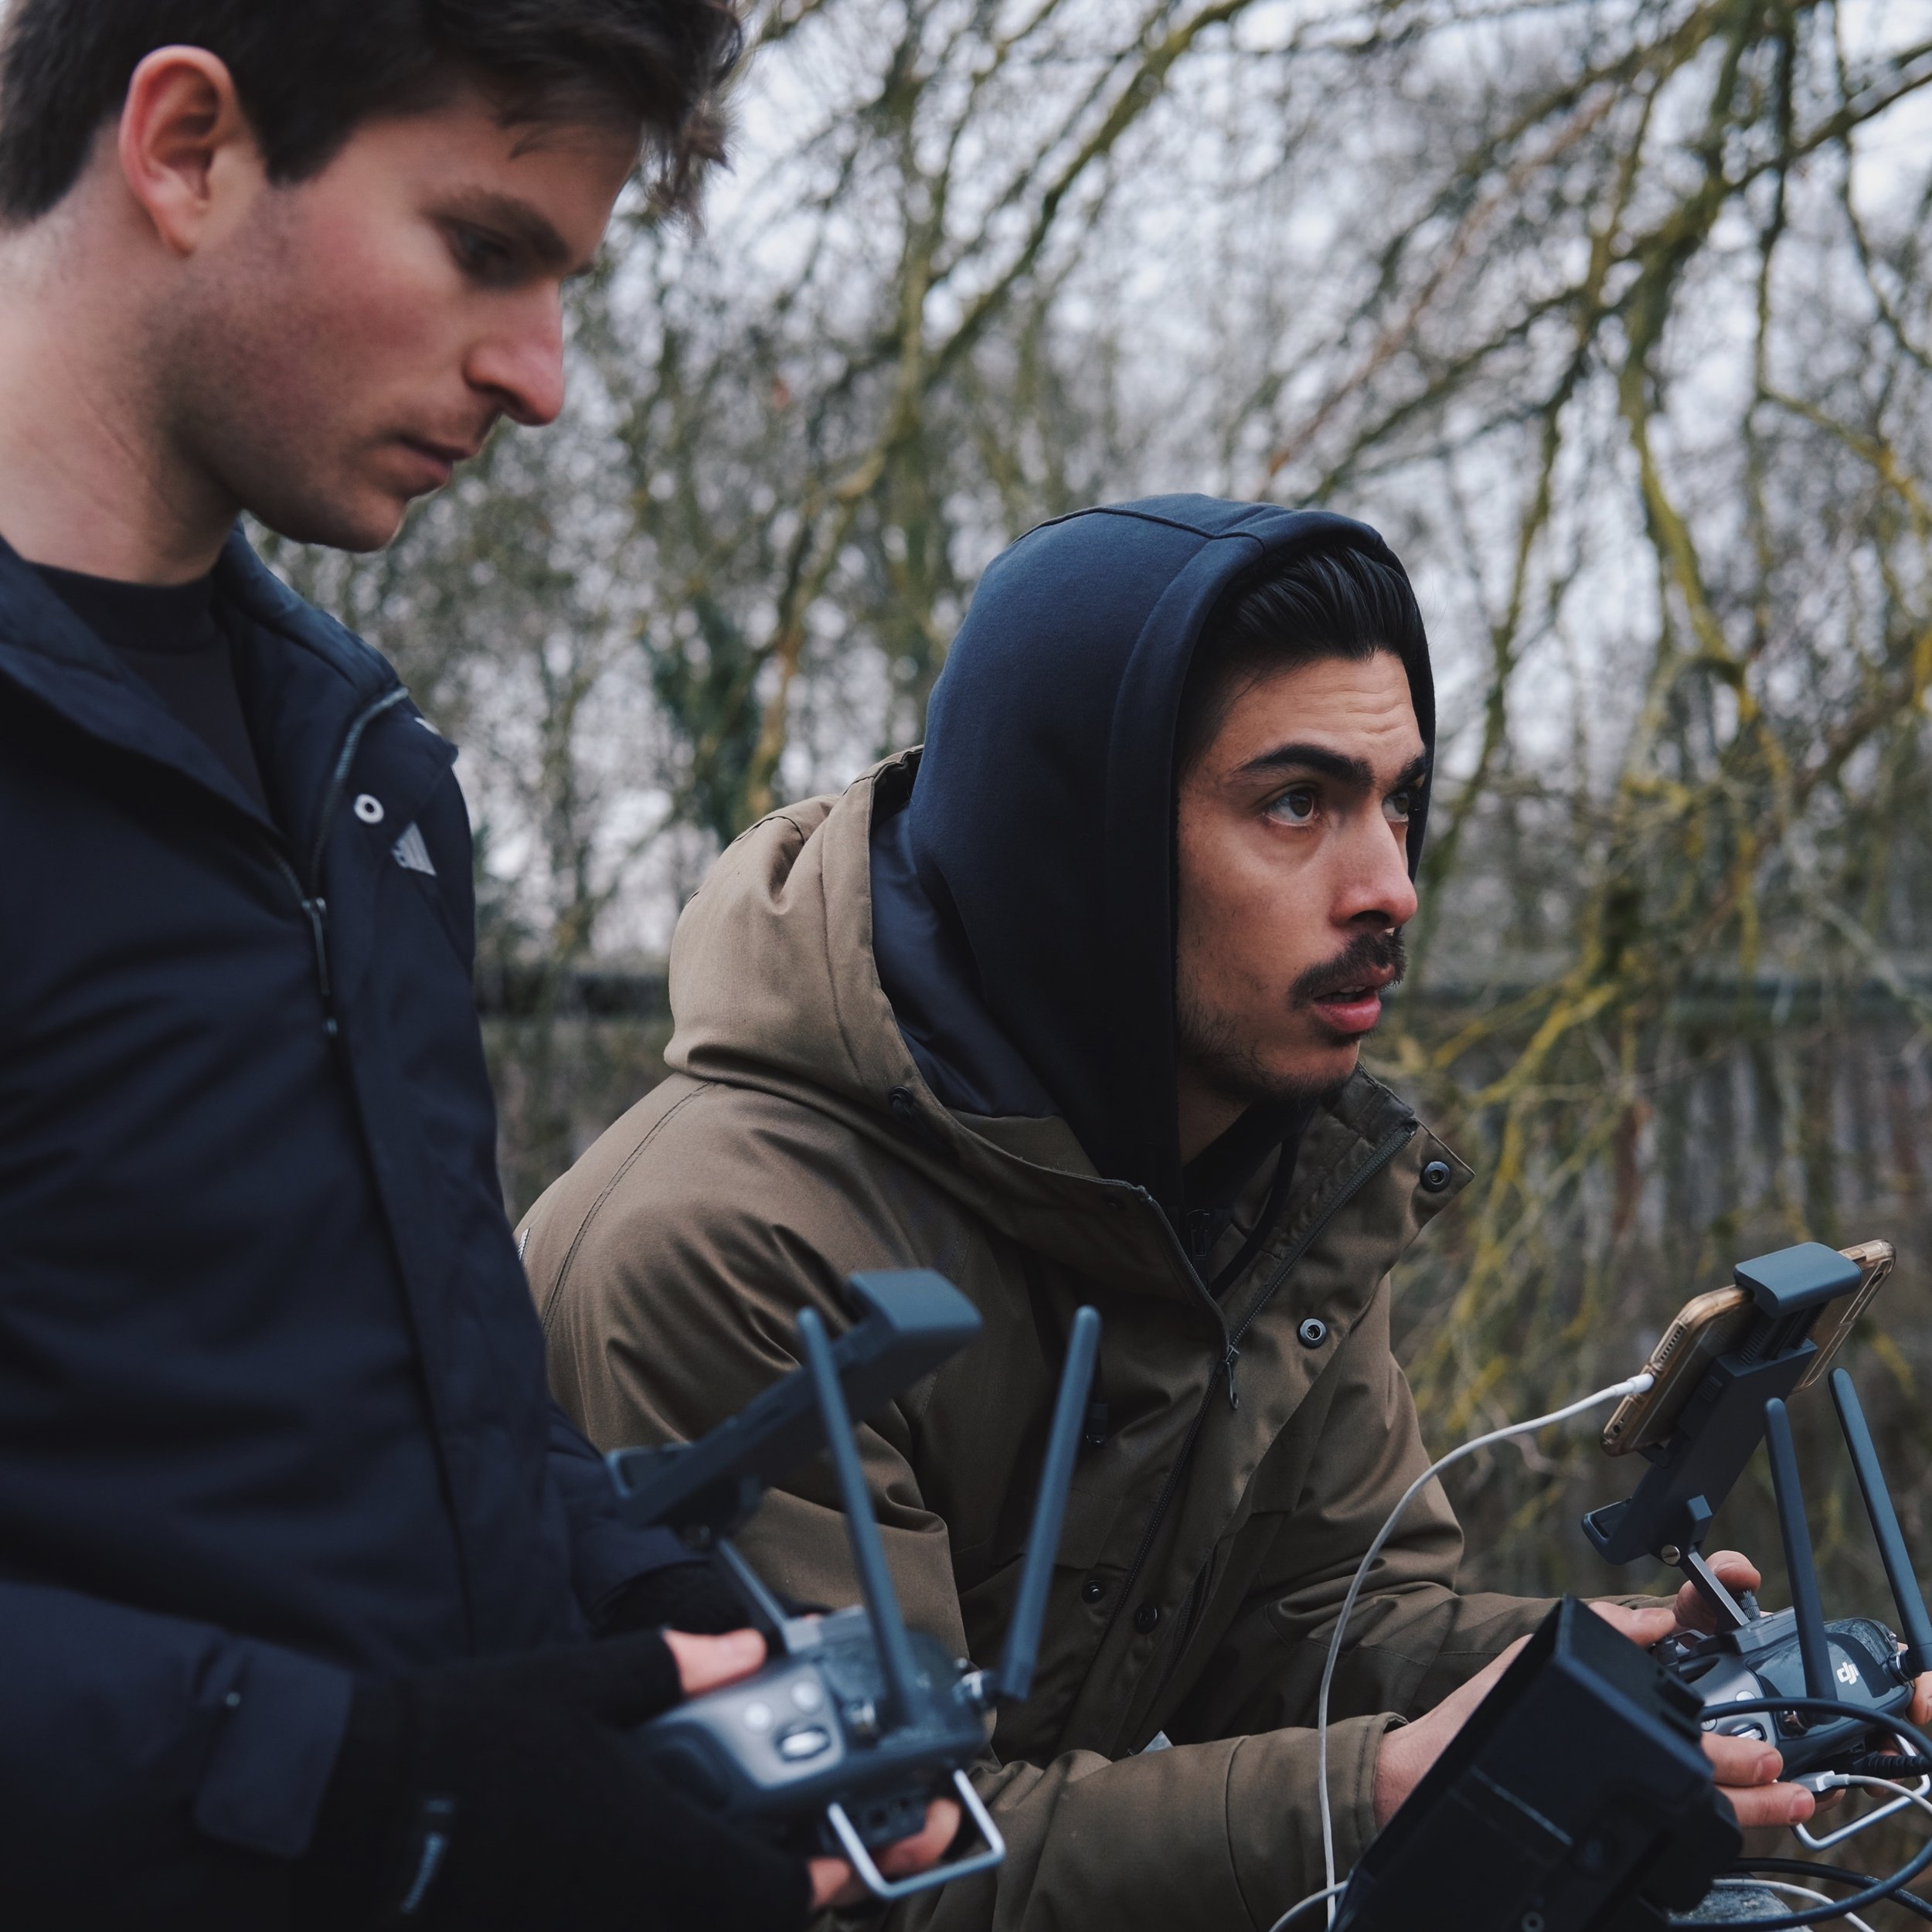 brother-film-co-drone-bts-1.JPG